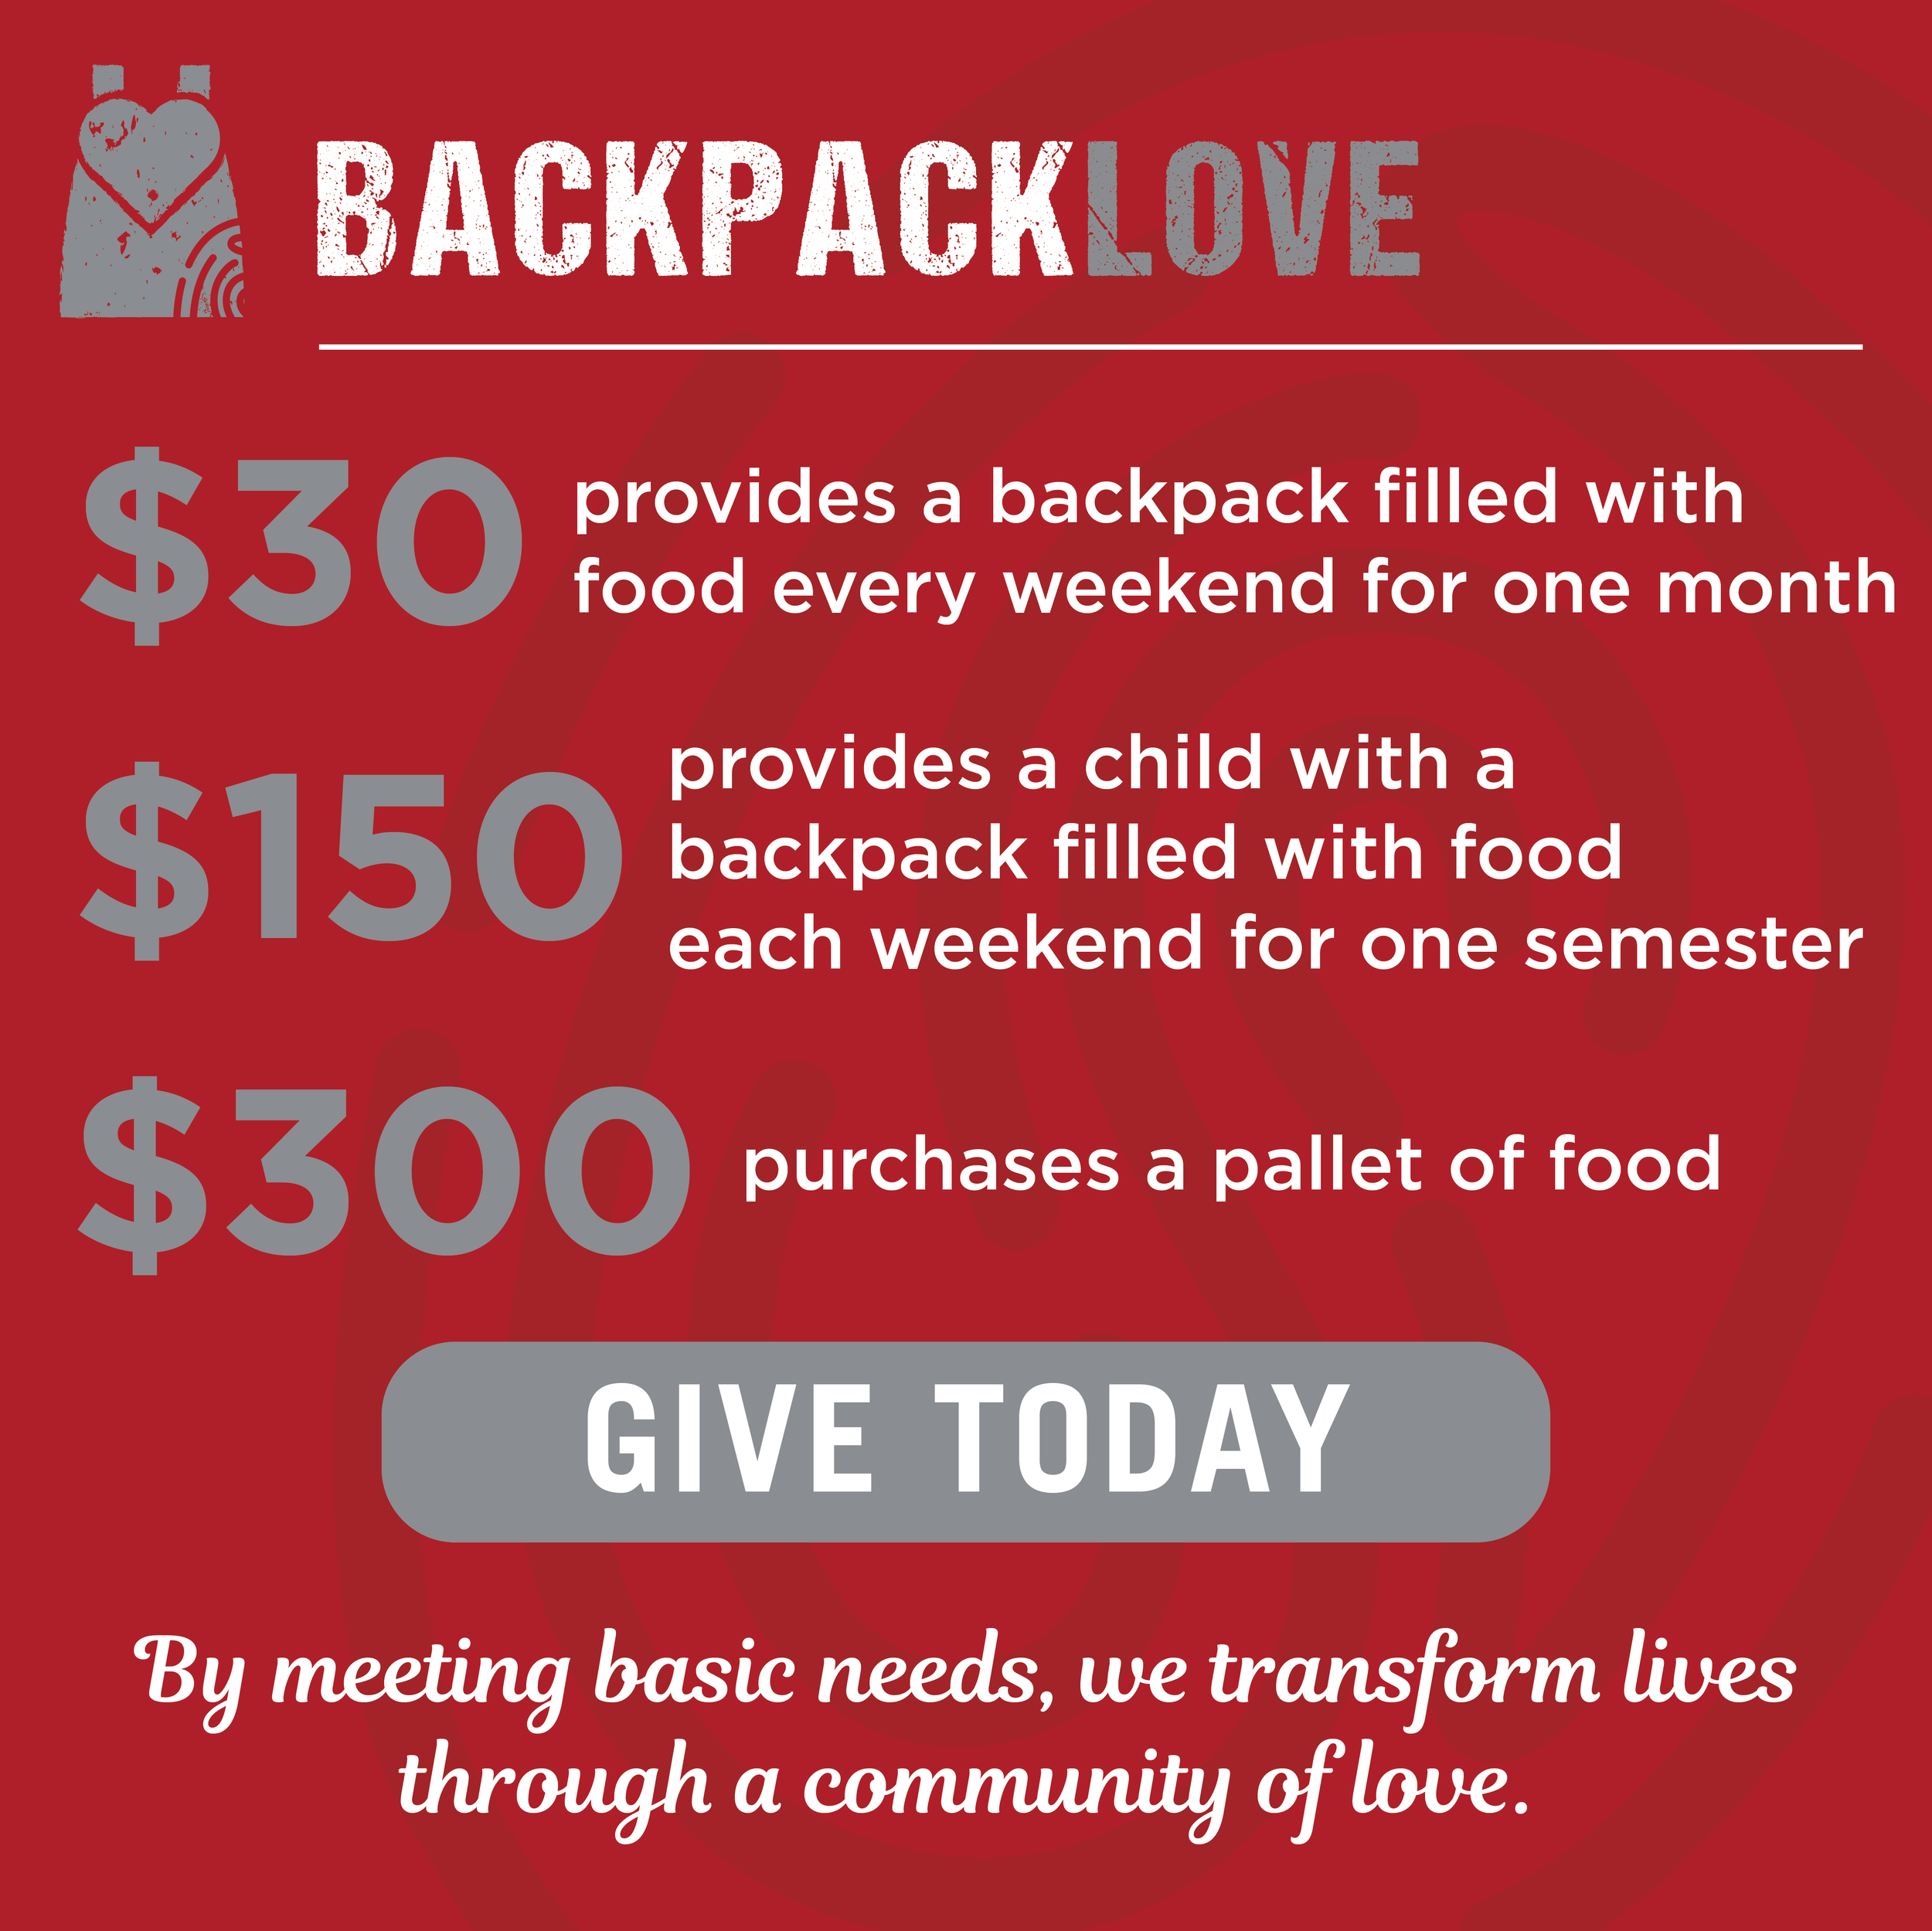 ss-backpack-love-donation-levels-2018-12-11-02.png